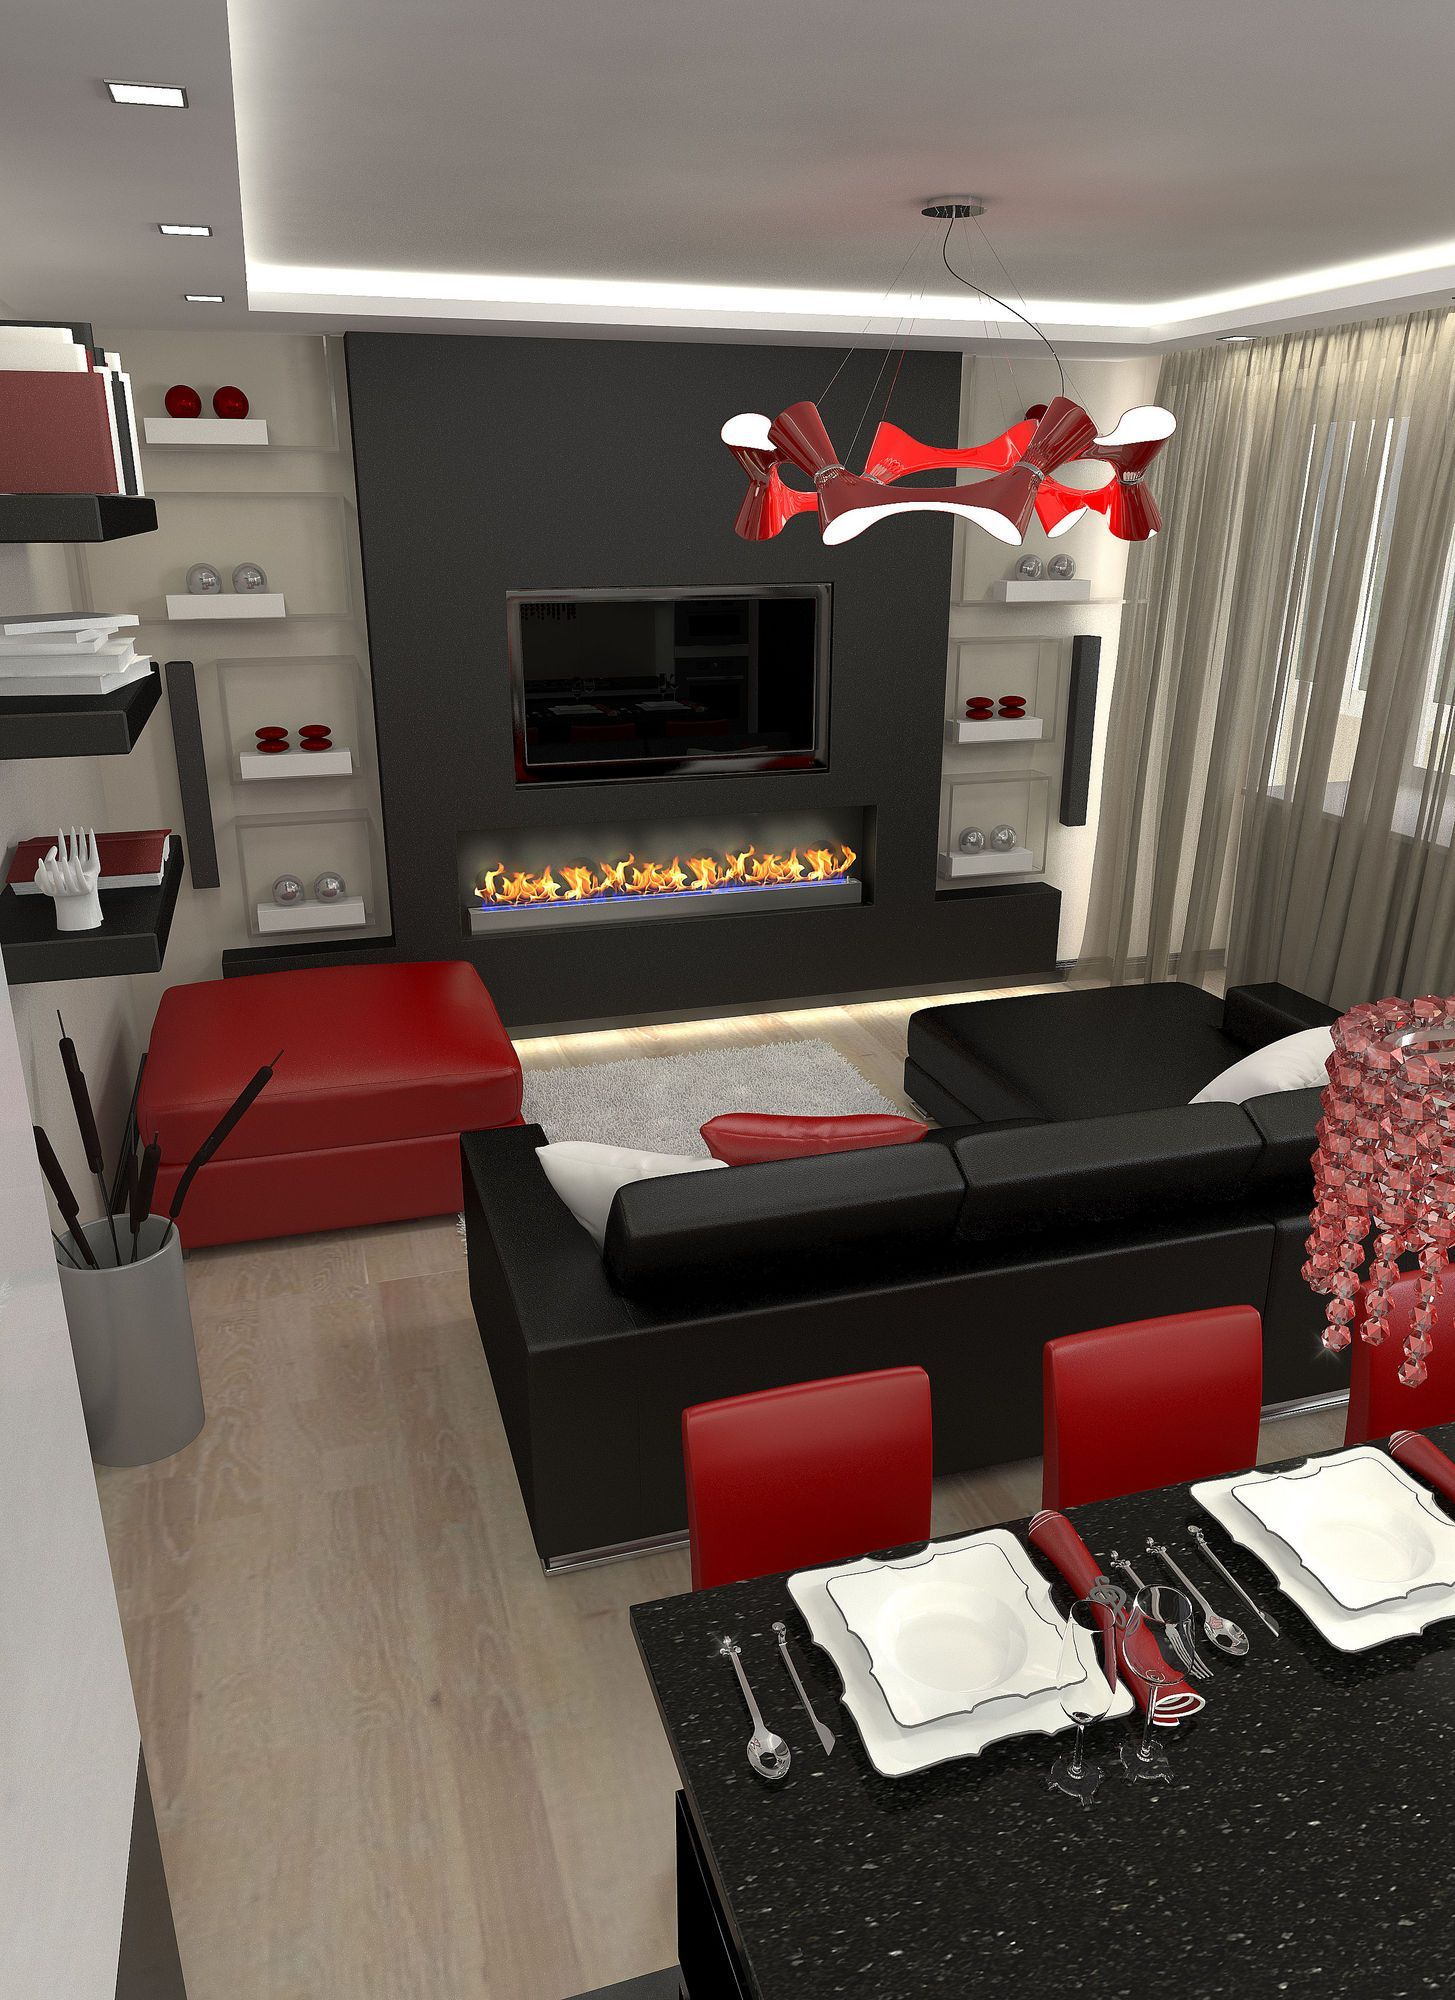 11 Genius Designs Of How To Craft Red And Black Living Room Sets Red Living Room Decor White Living Room Decor Black Living Room